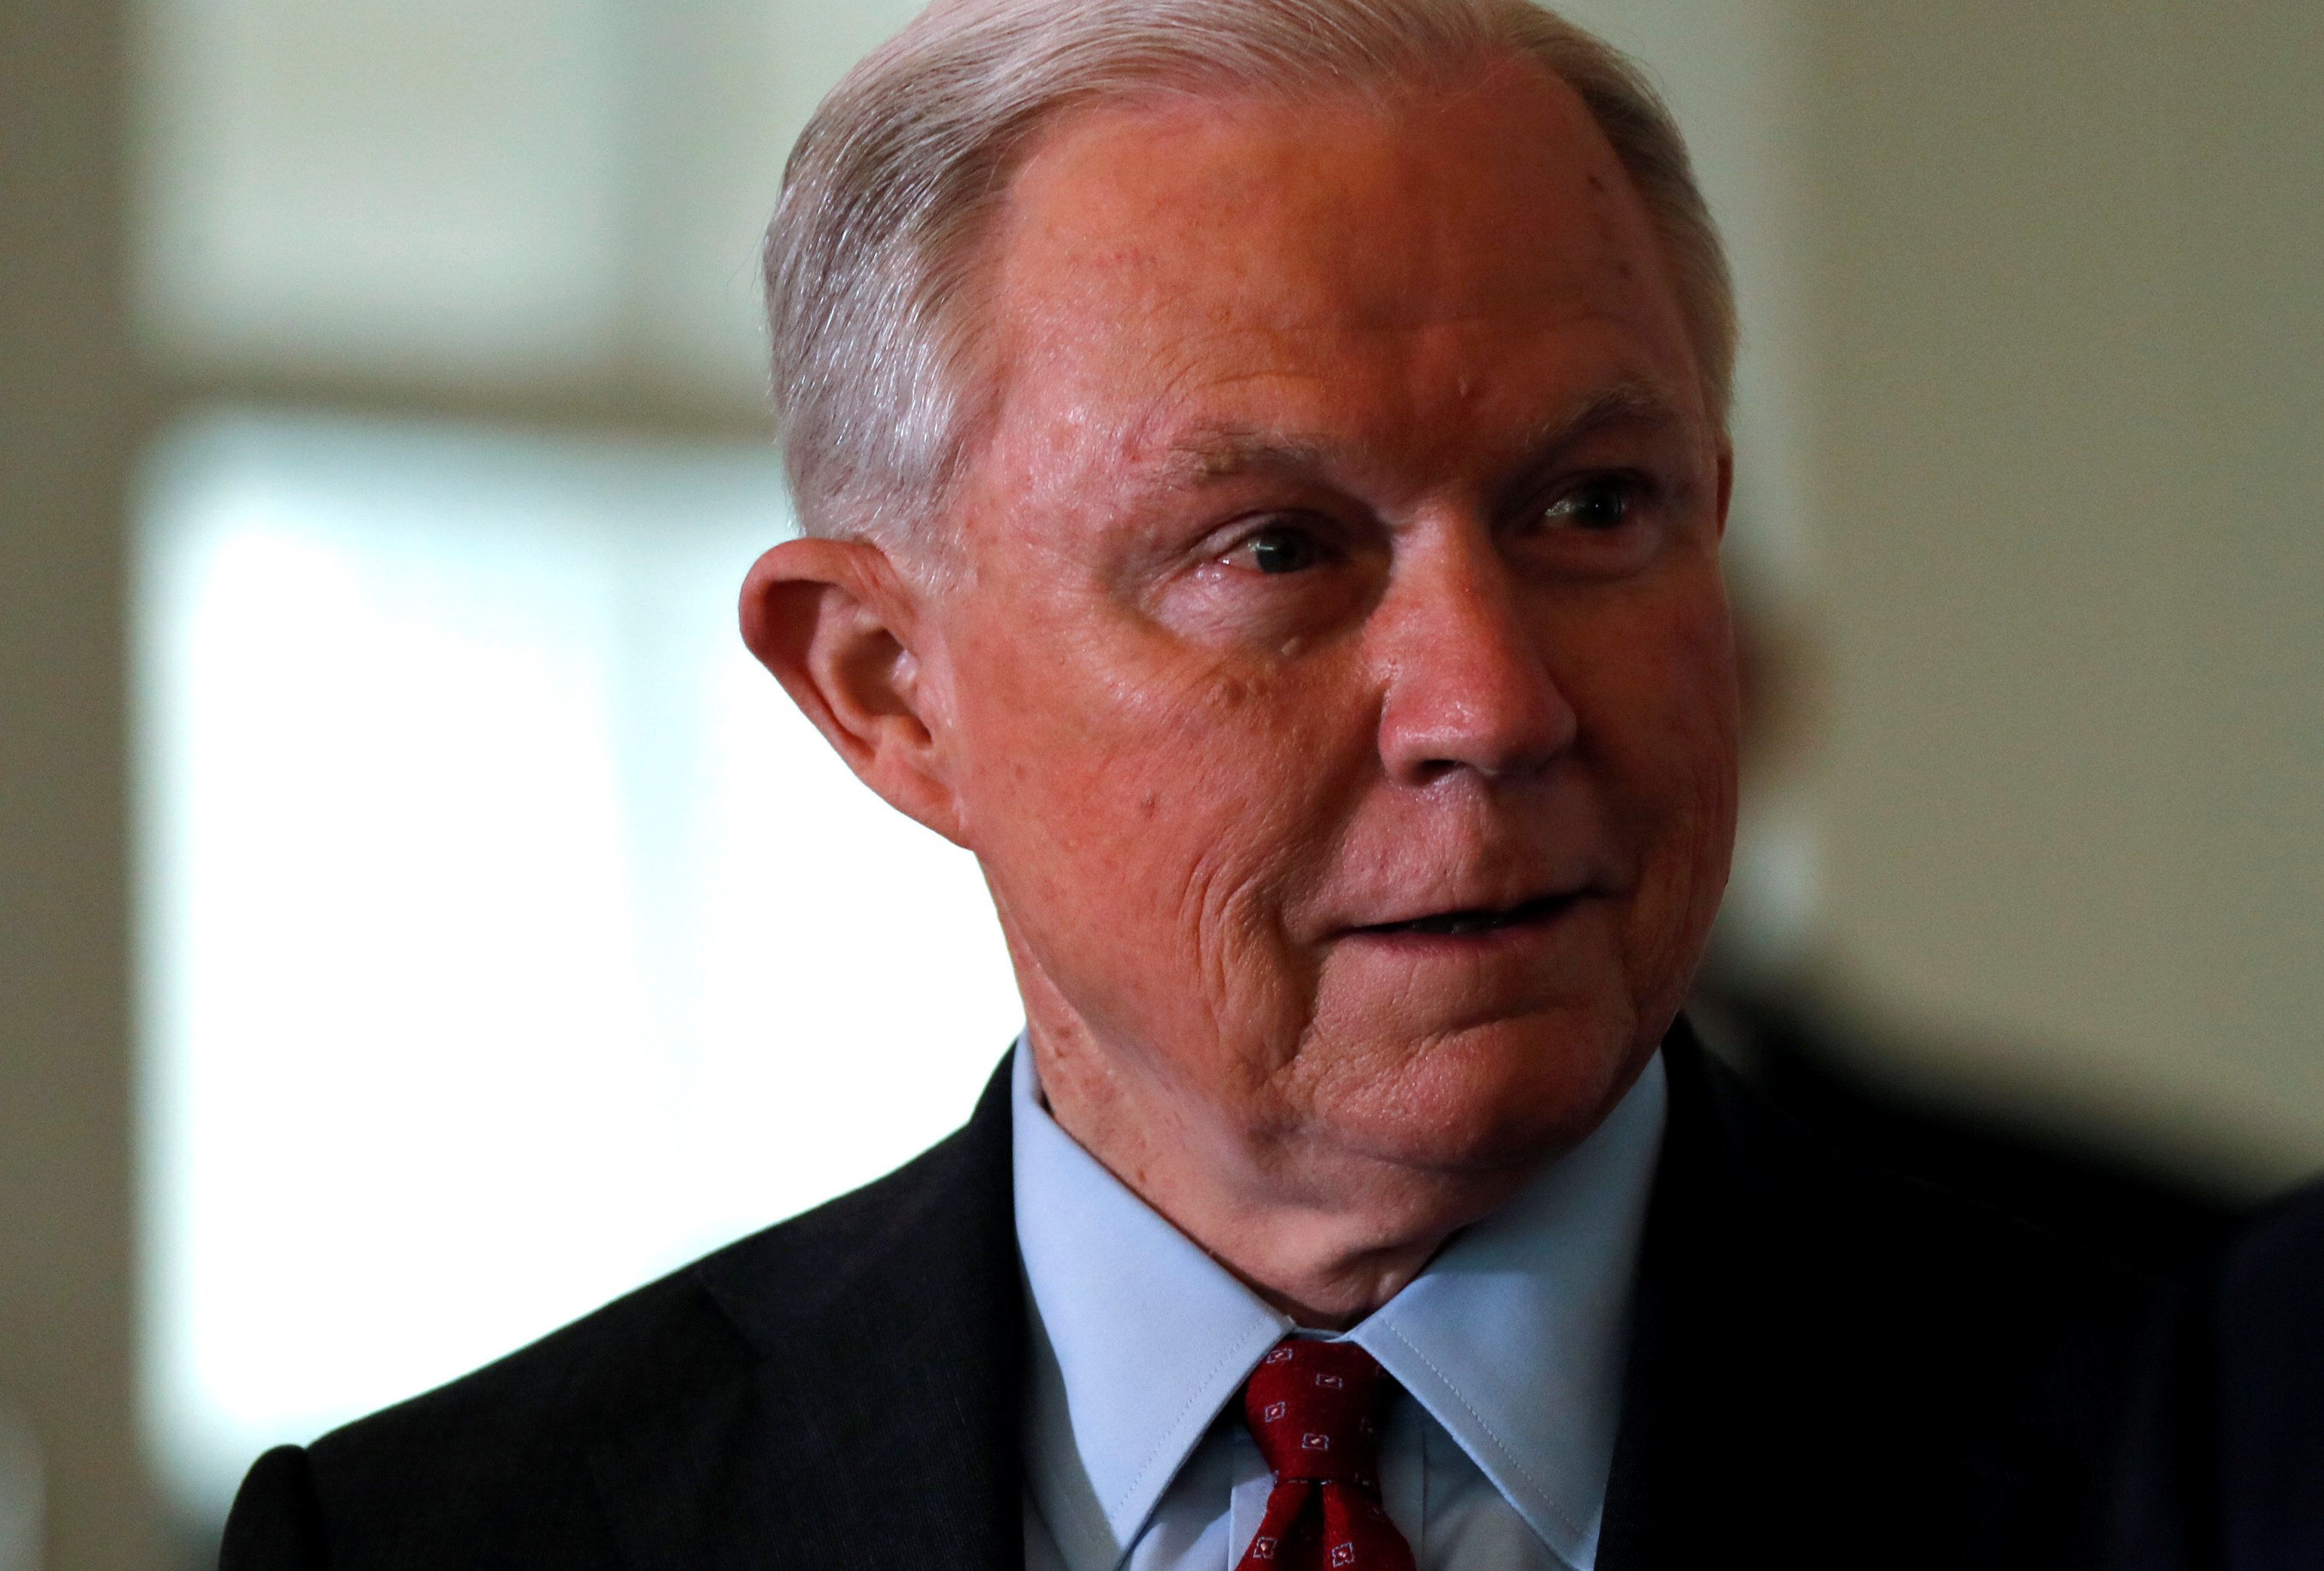 U.S. Attorney General Jeff Sessions arrives to announce a new Justice Department initiative on religious liberty at the Orthodox Union Advocacy Center's Annual Leadership Mission to DC in Washington, U.S., June 13, 2013.  REUTERS/Jim Bourg